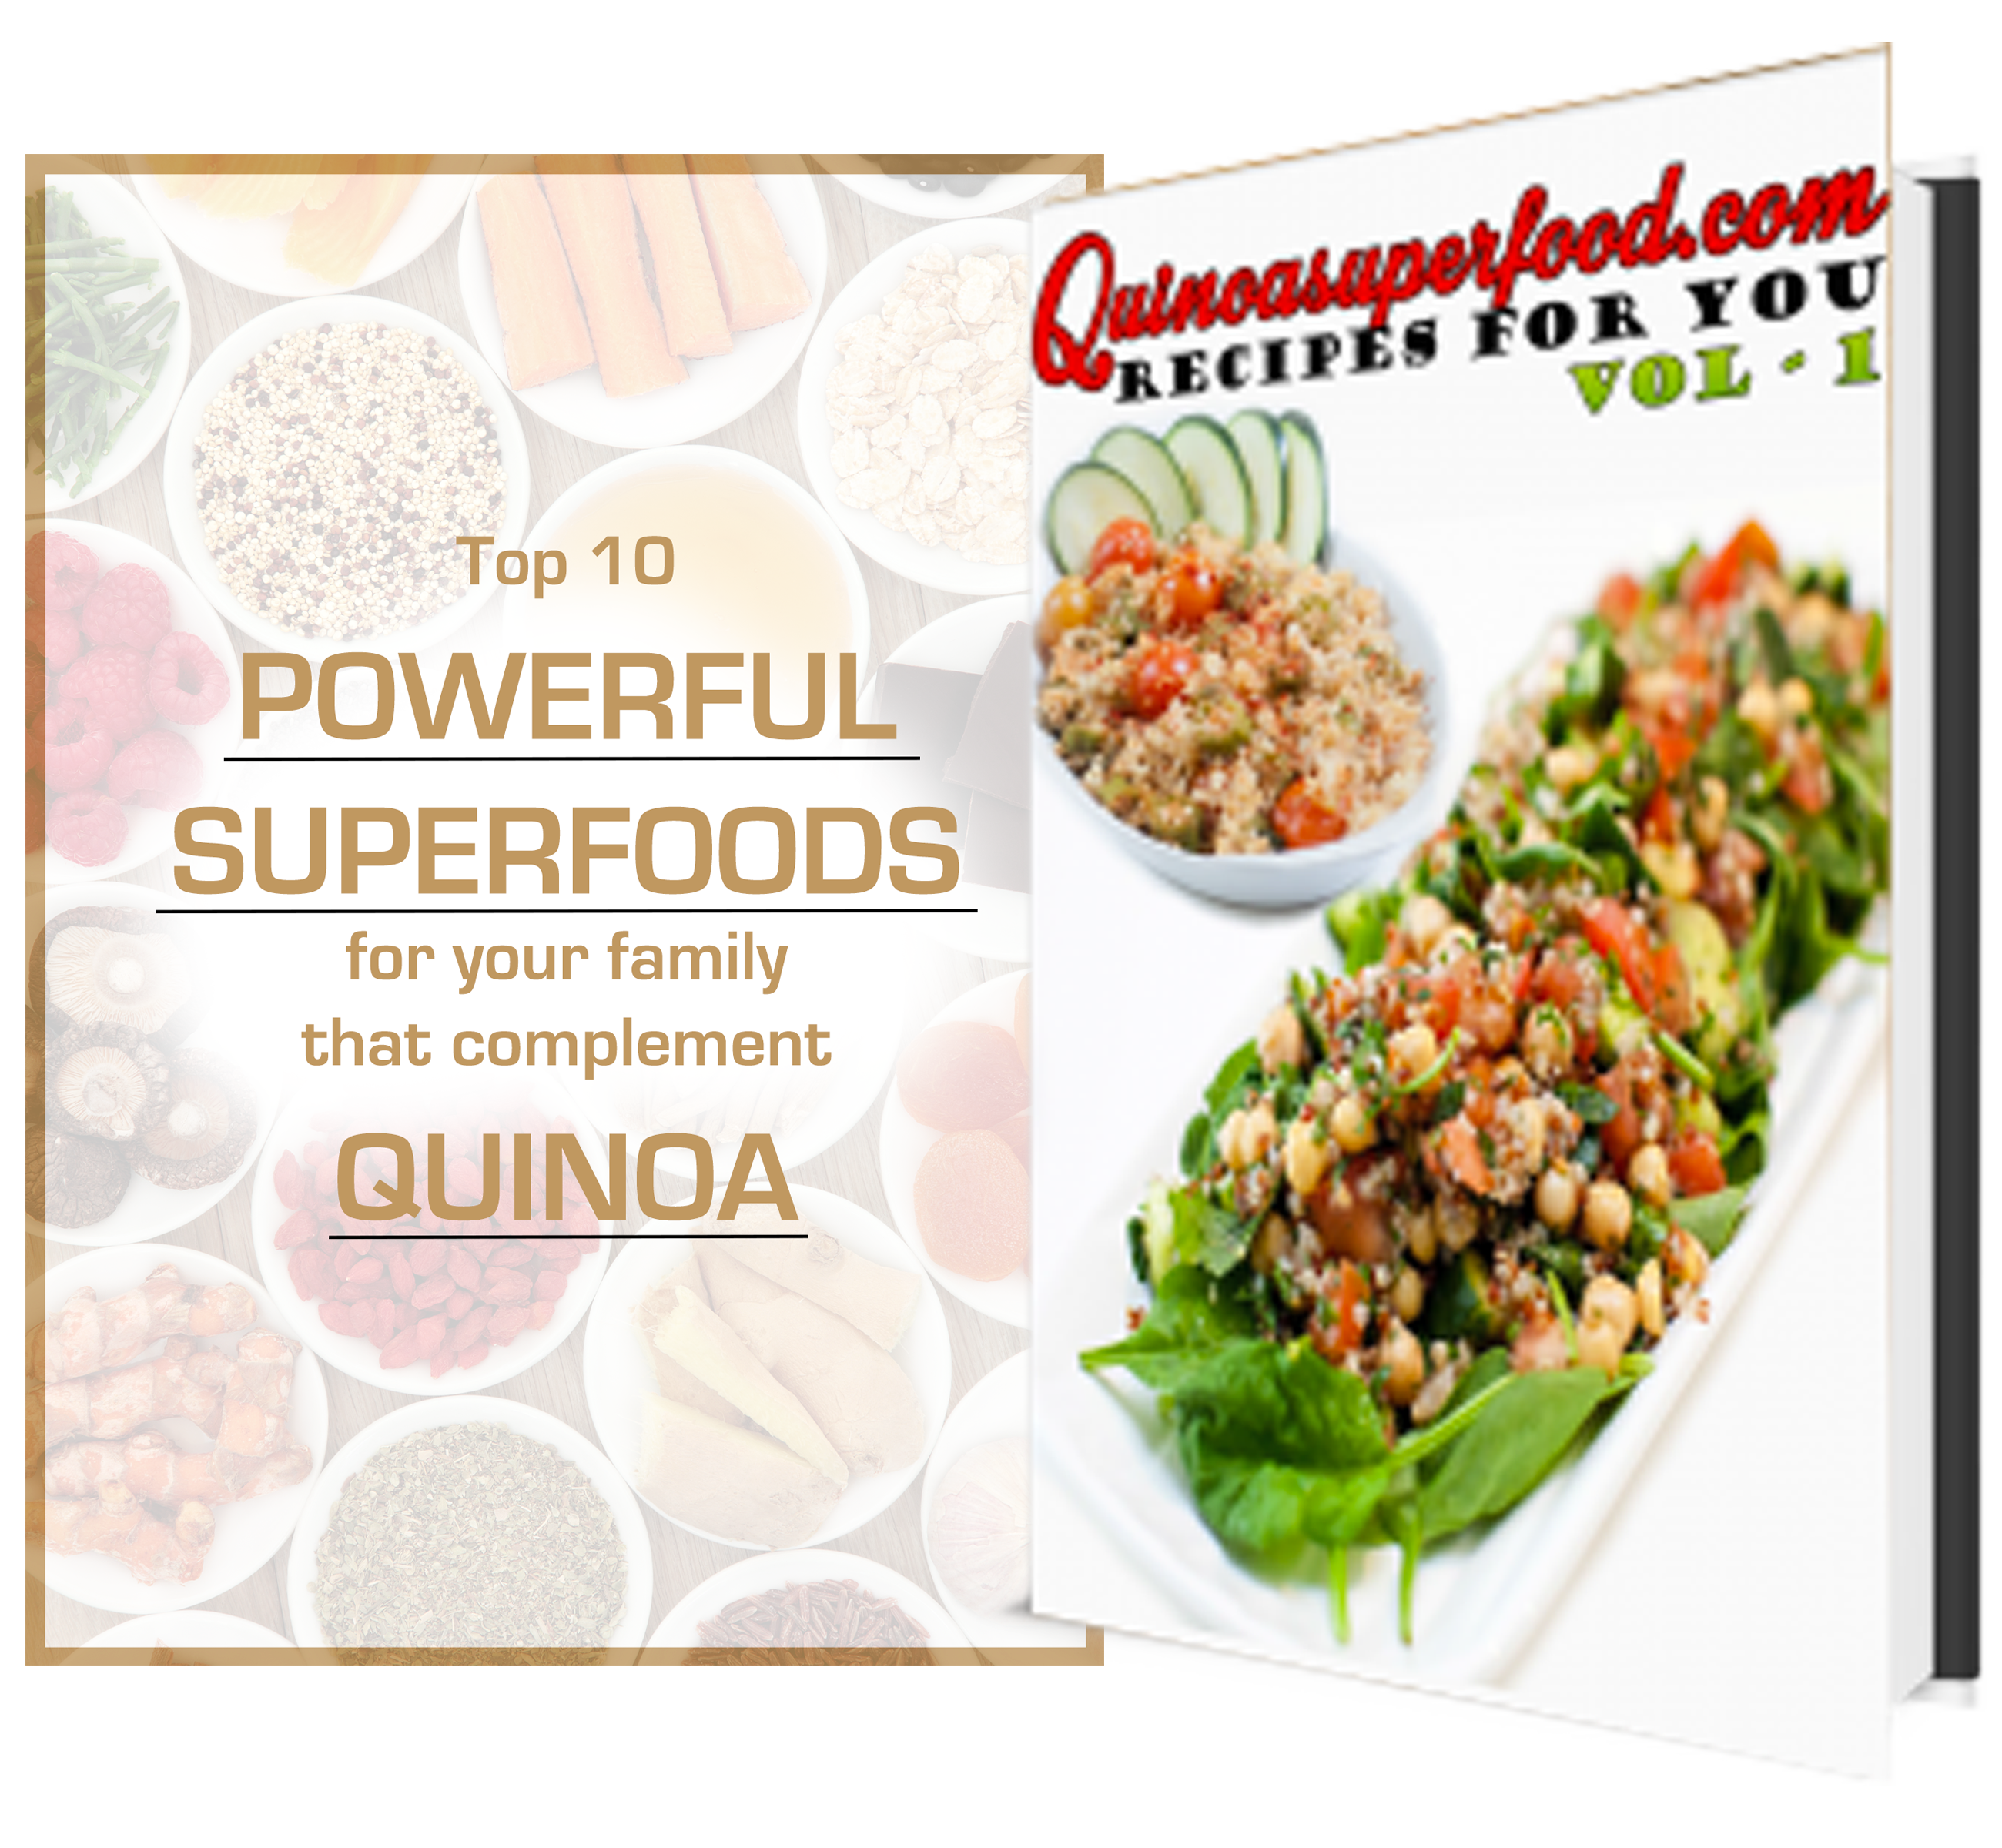 Quinoasuperfood.com - Recipes for You - Vol.1